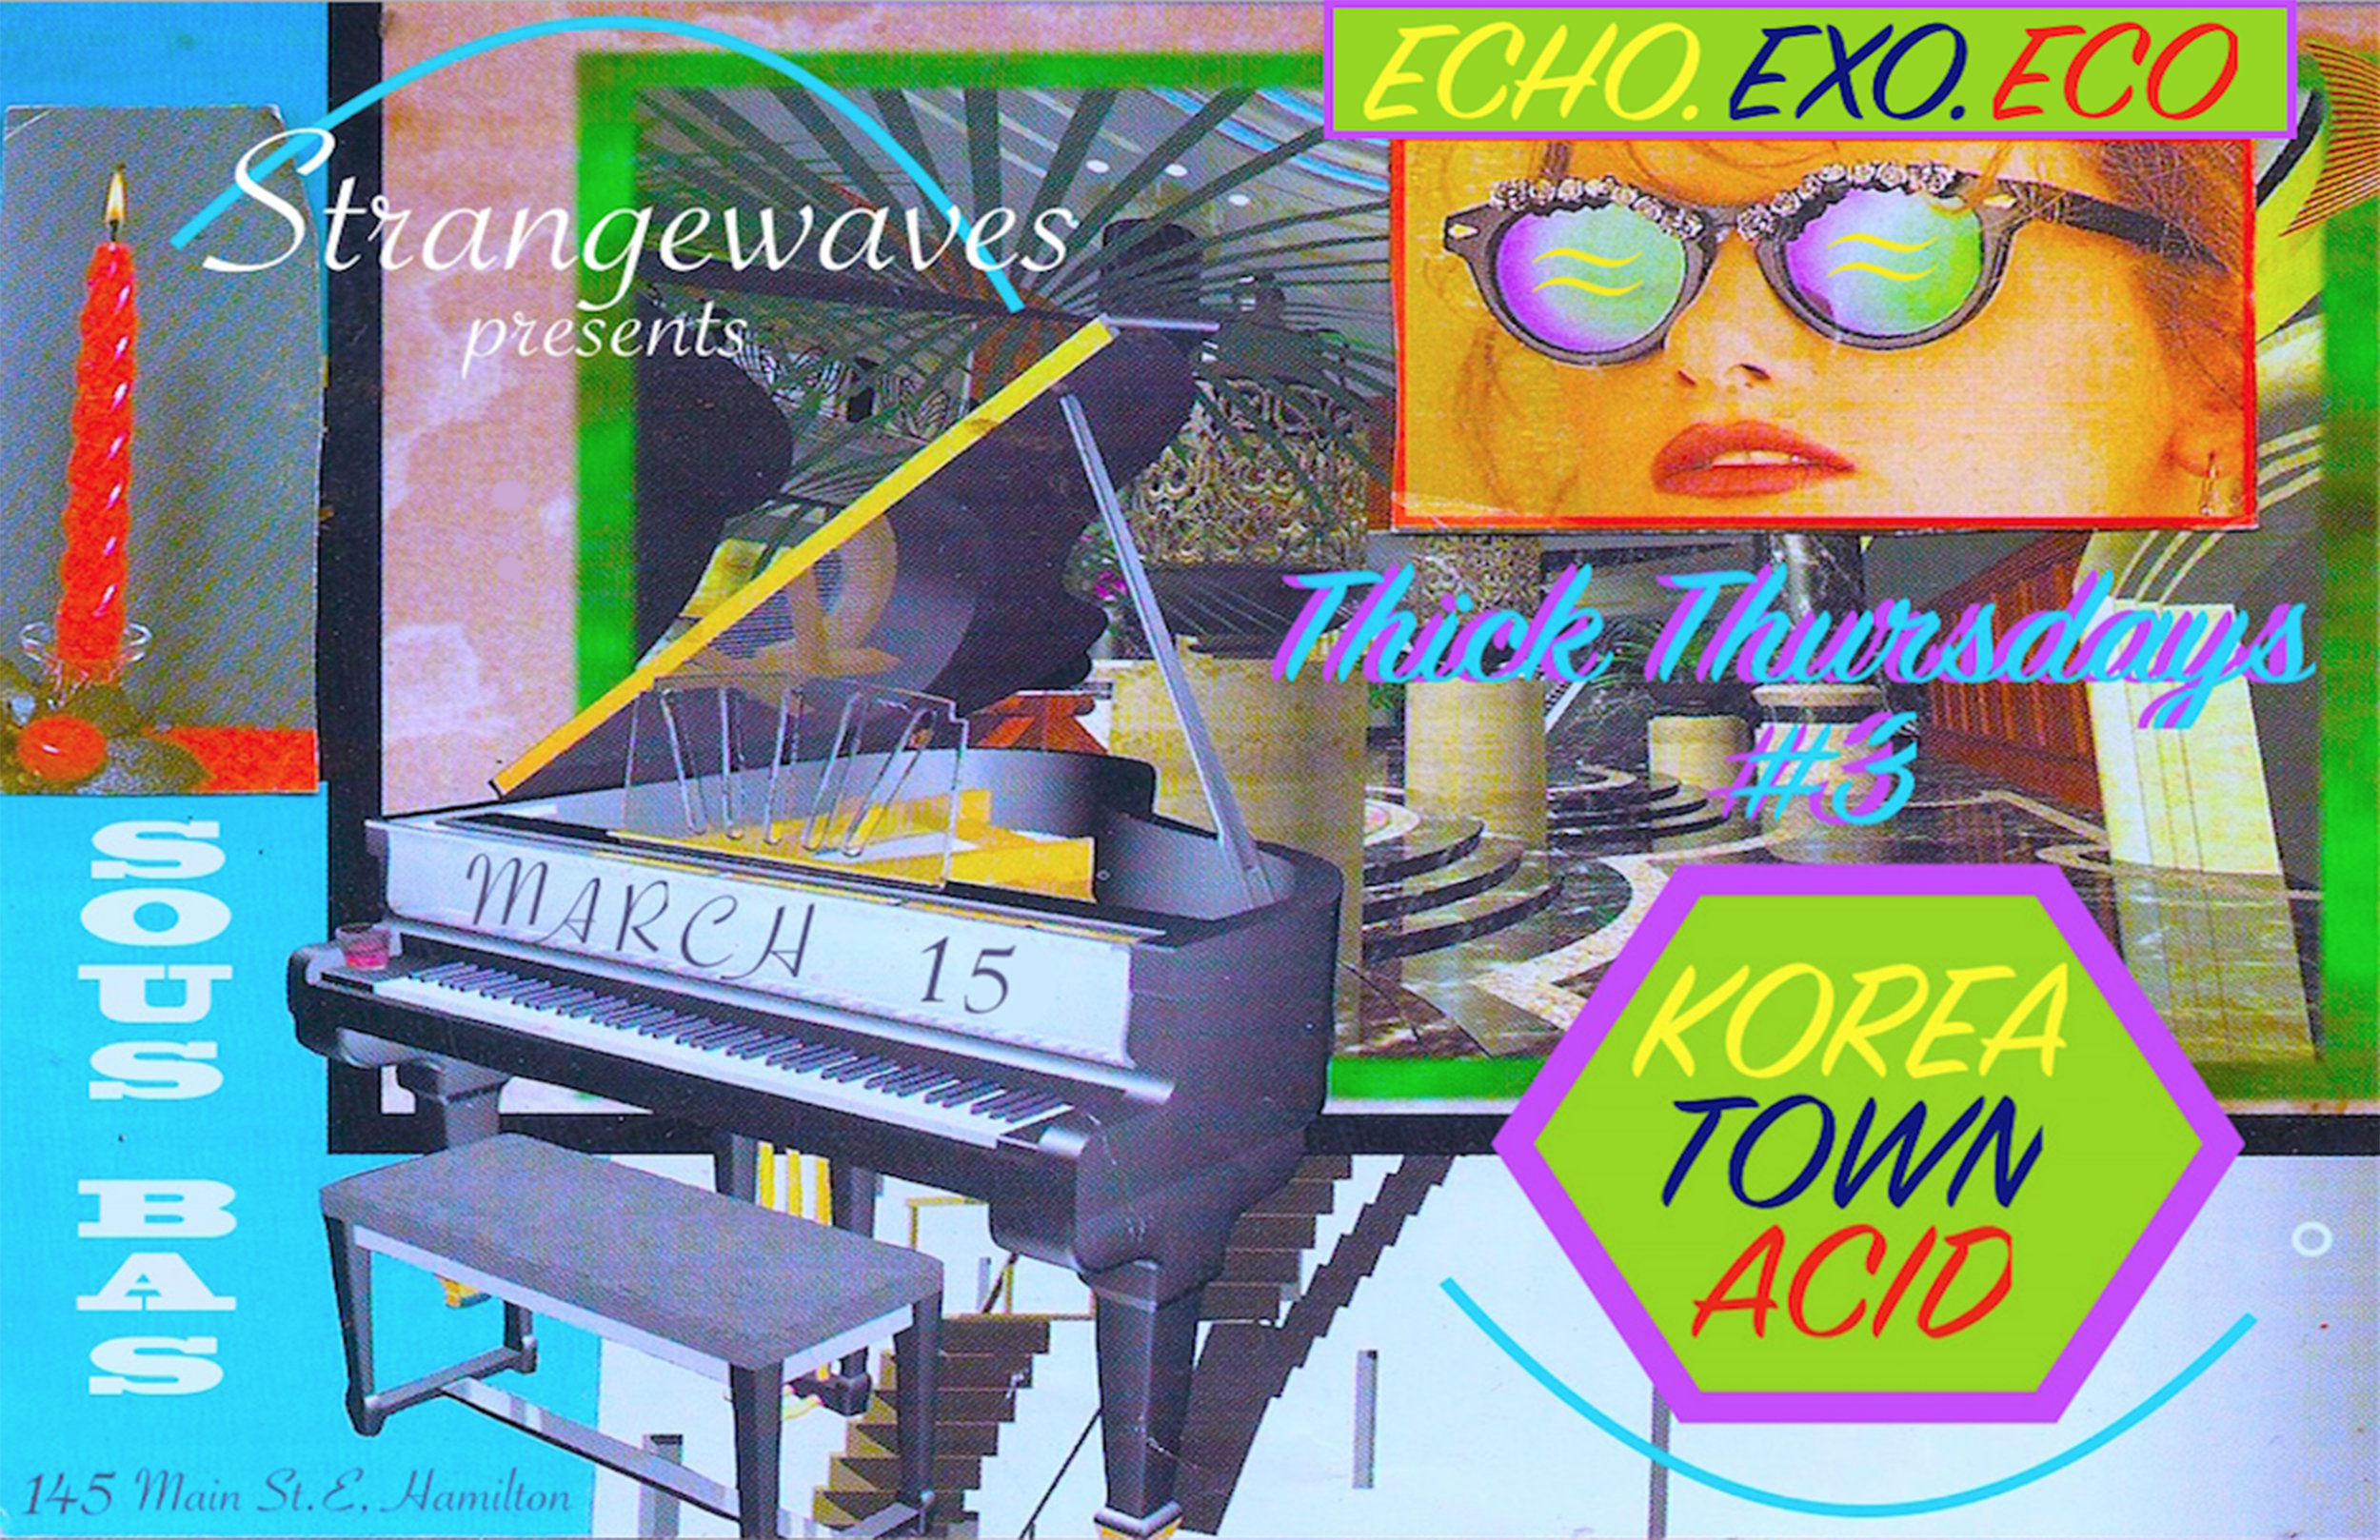 THICK Thursday #3: Korea Town Acid, echo.exo.eco  @Sous Bas